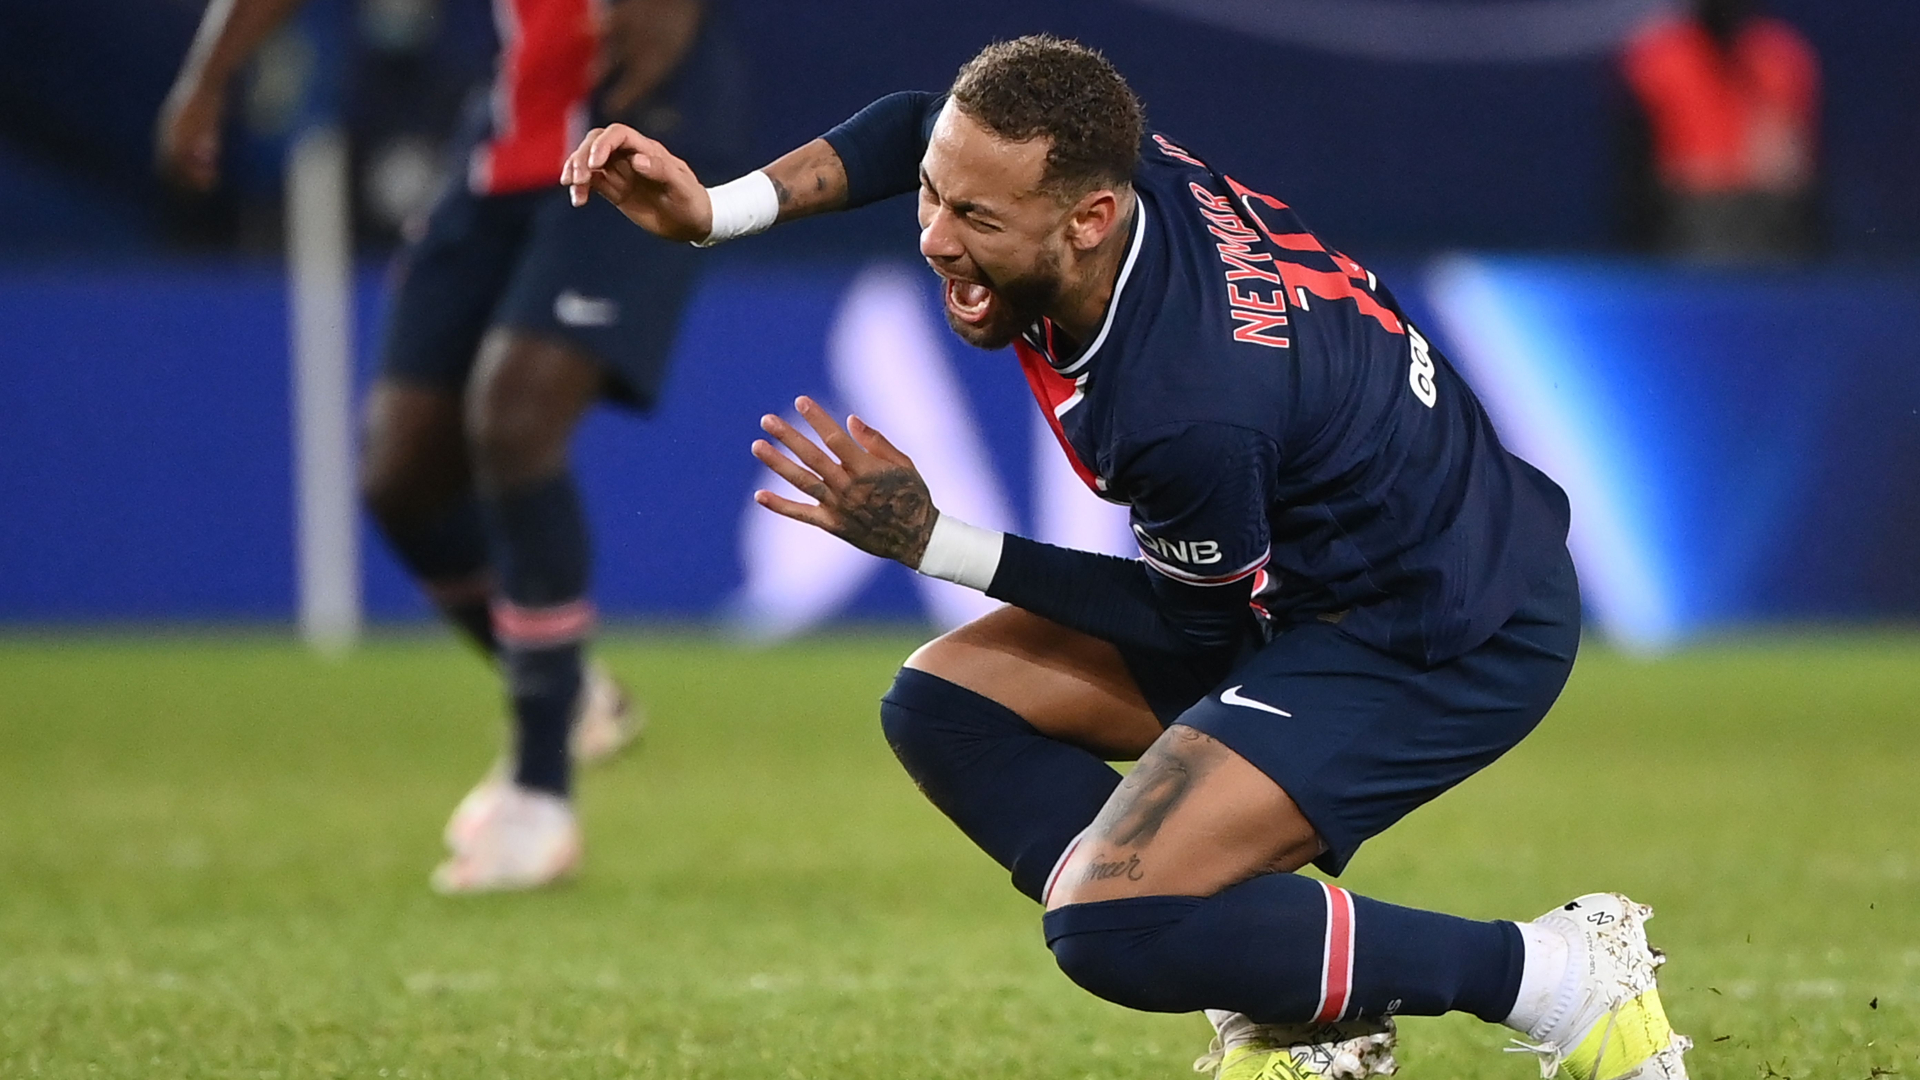 'Damn, how much longer?' - Neymar's dad angry after PSG star suffers another injury